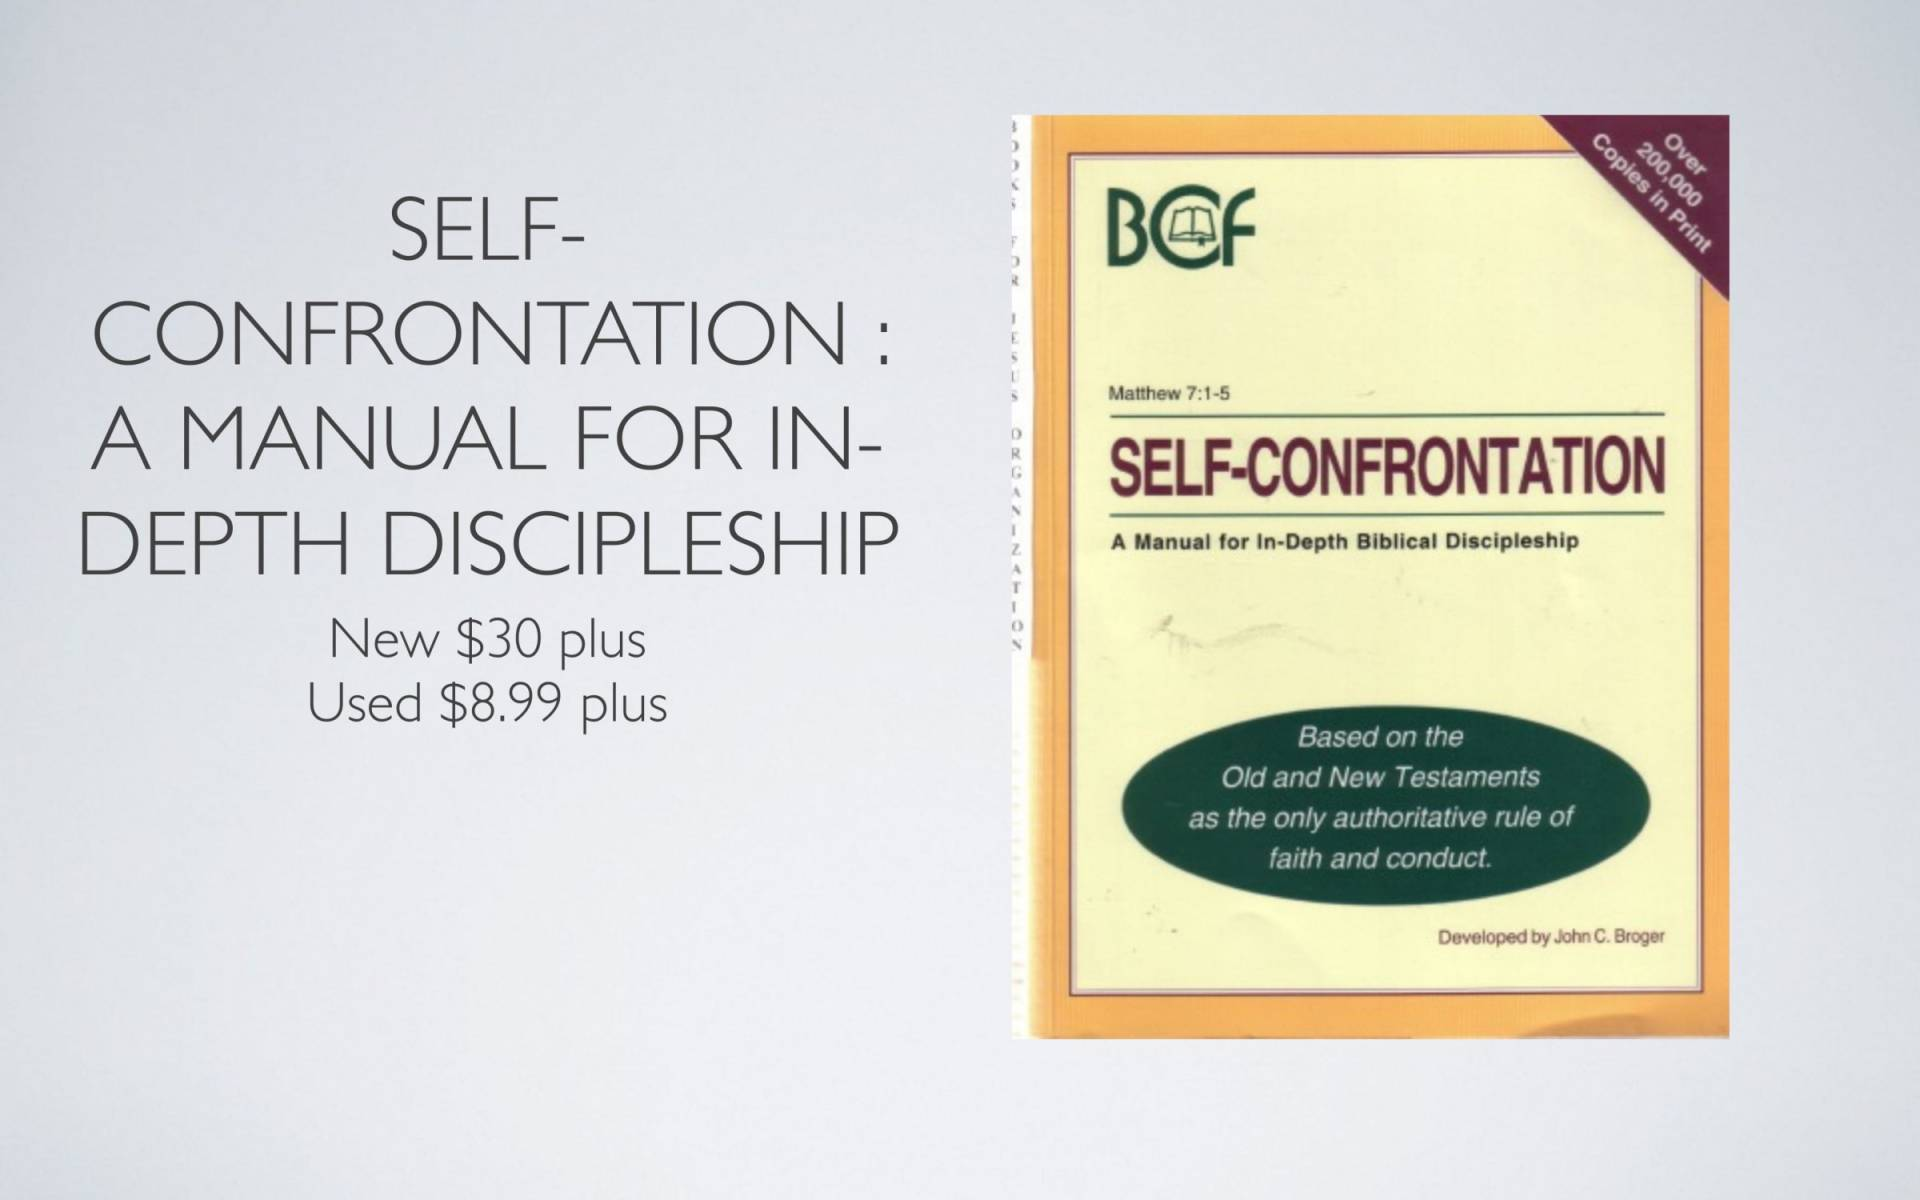 BC&D-28 - Lesson 9-1 - Dealing With Self-02